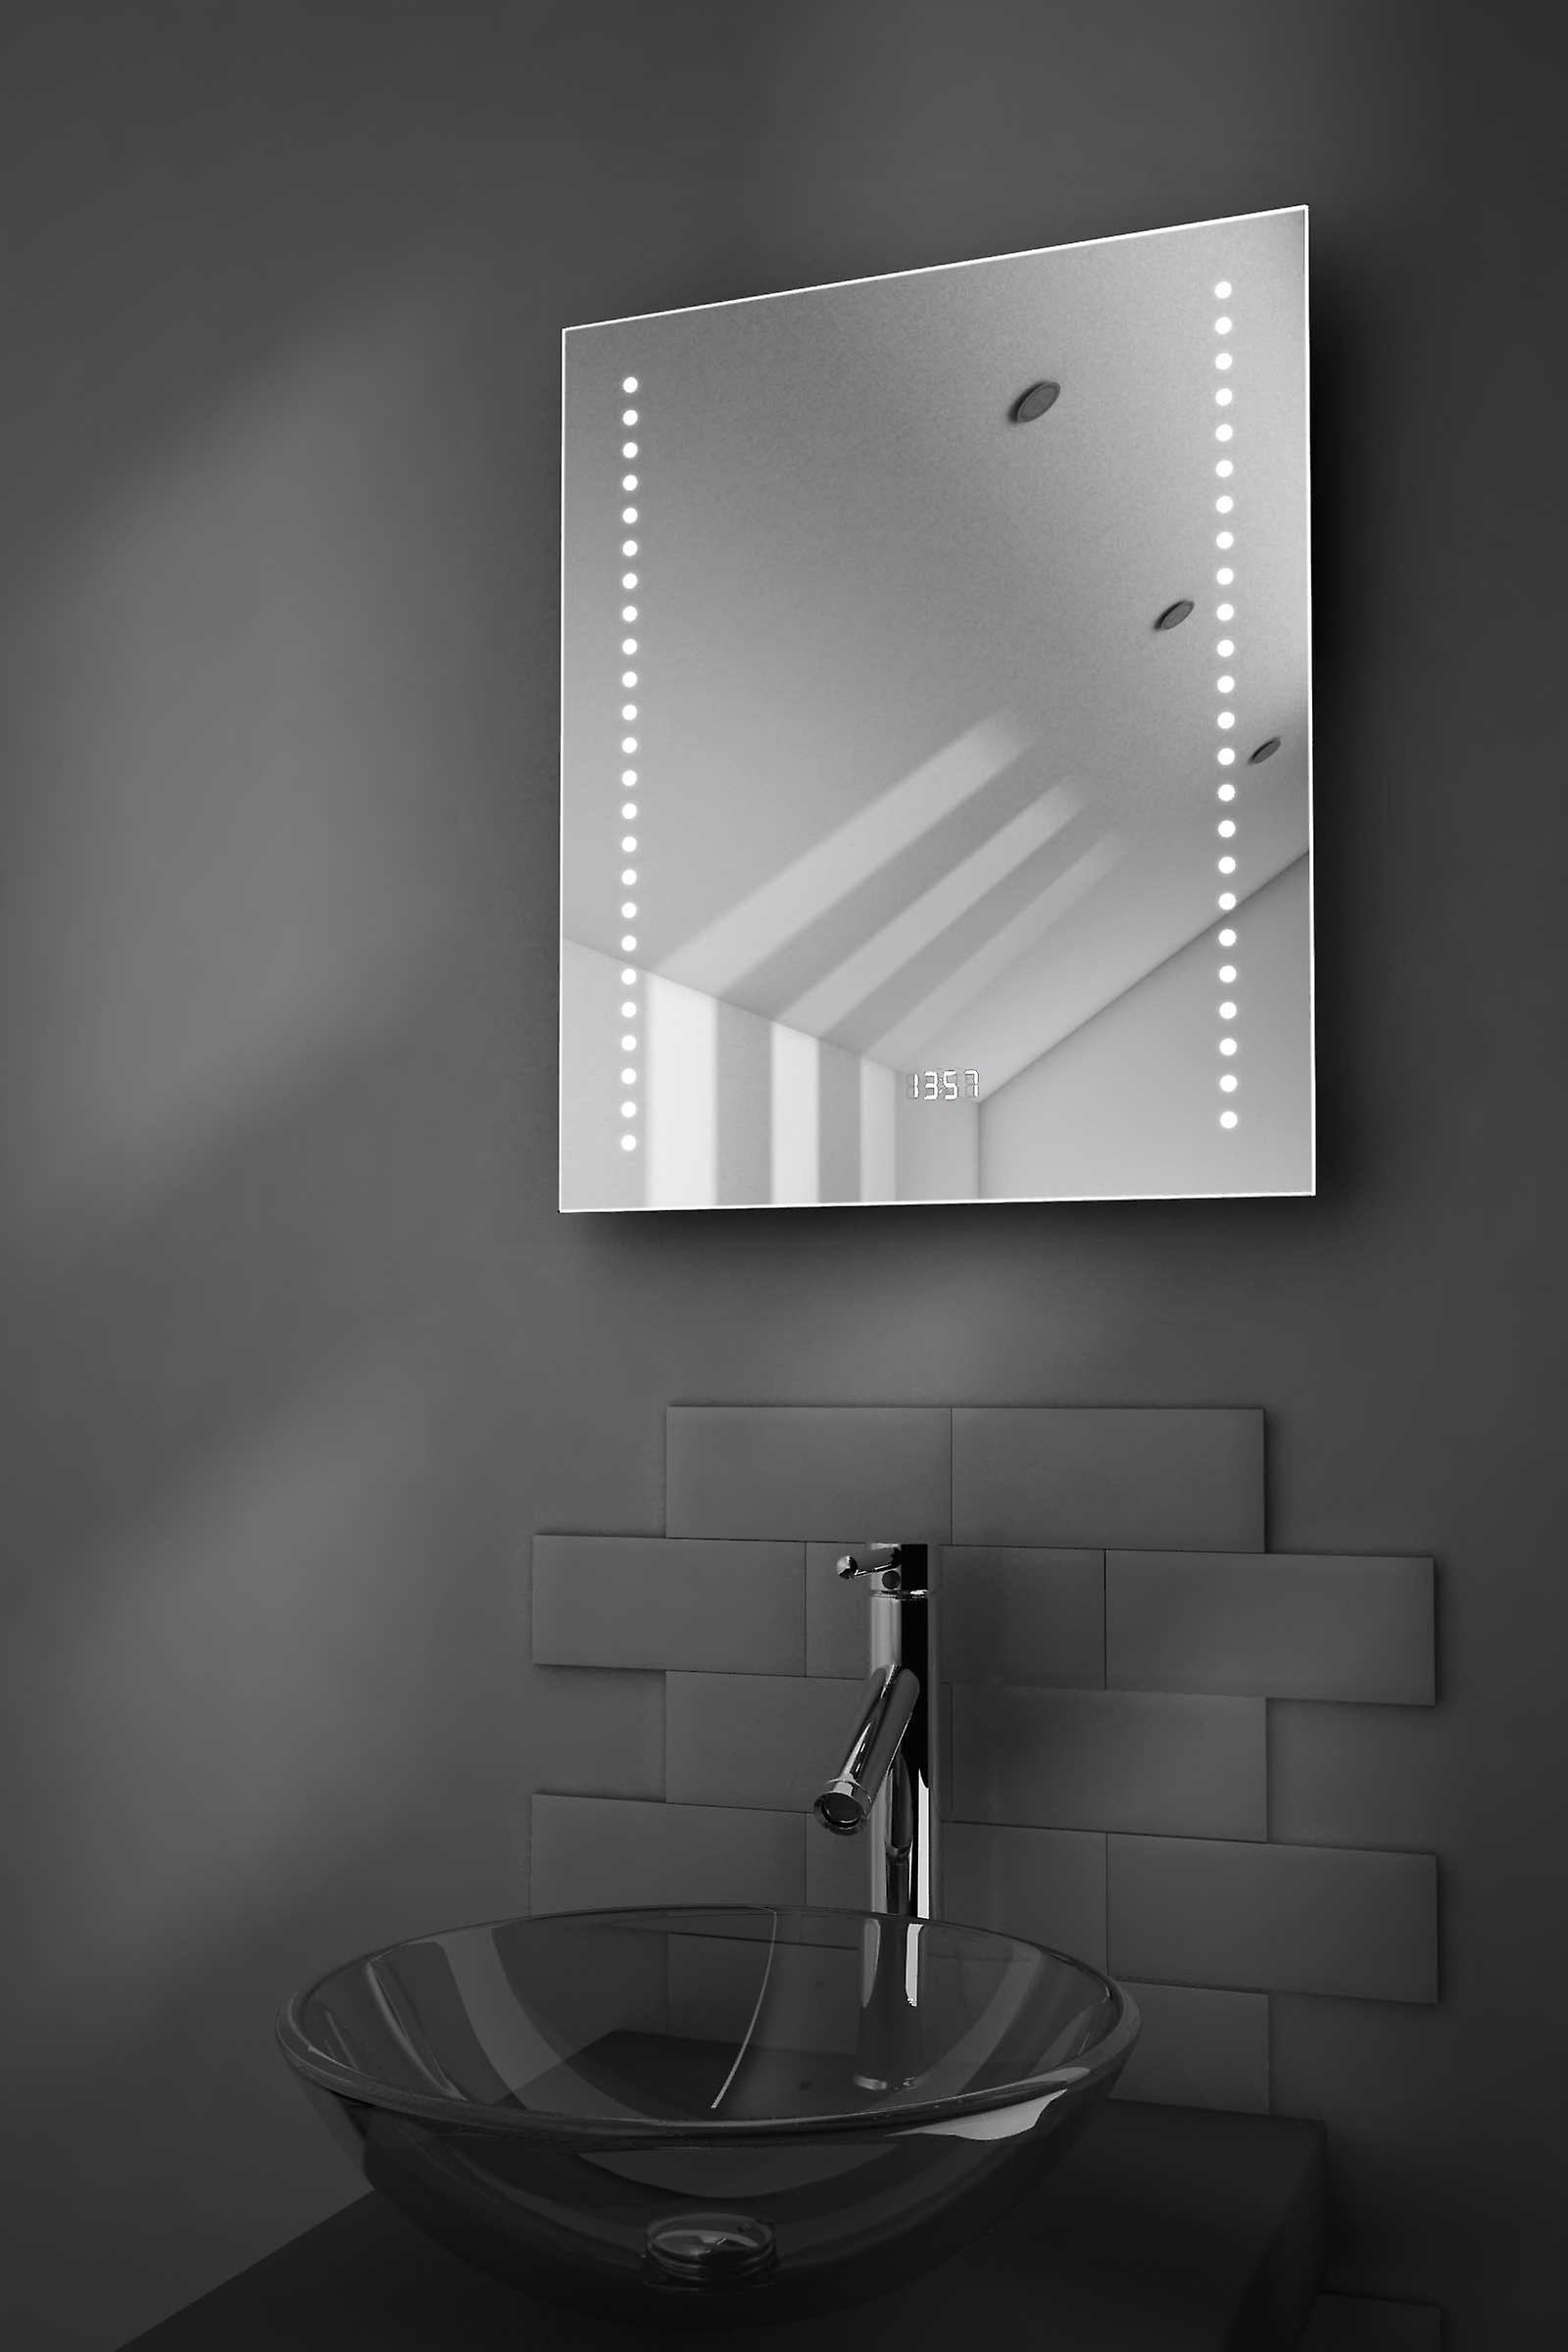 Dream Shaver Bathroom Mirror With Clock, Demister & Sensor k191